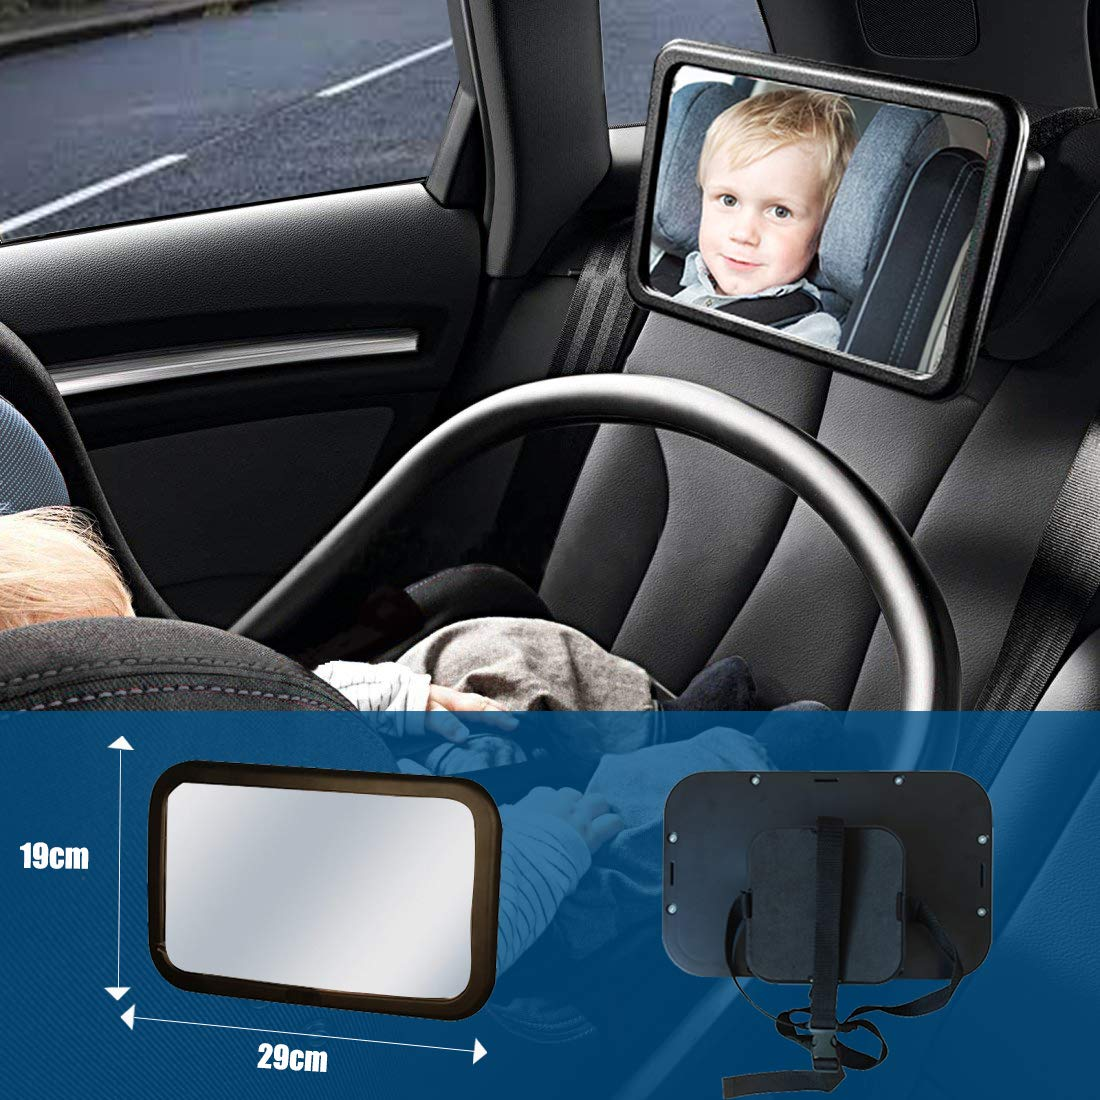 Baby Car Mirror Car Mirror For Baby Rear Facing Safety Car Seat Mirror Shockproof Baby Mirror For Car With Crystal Clear Peace Of Mind To Keep An Eye On Baby In